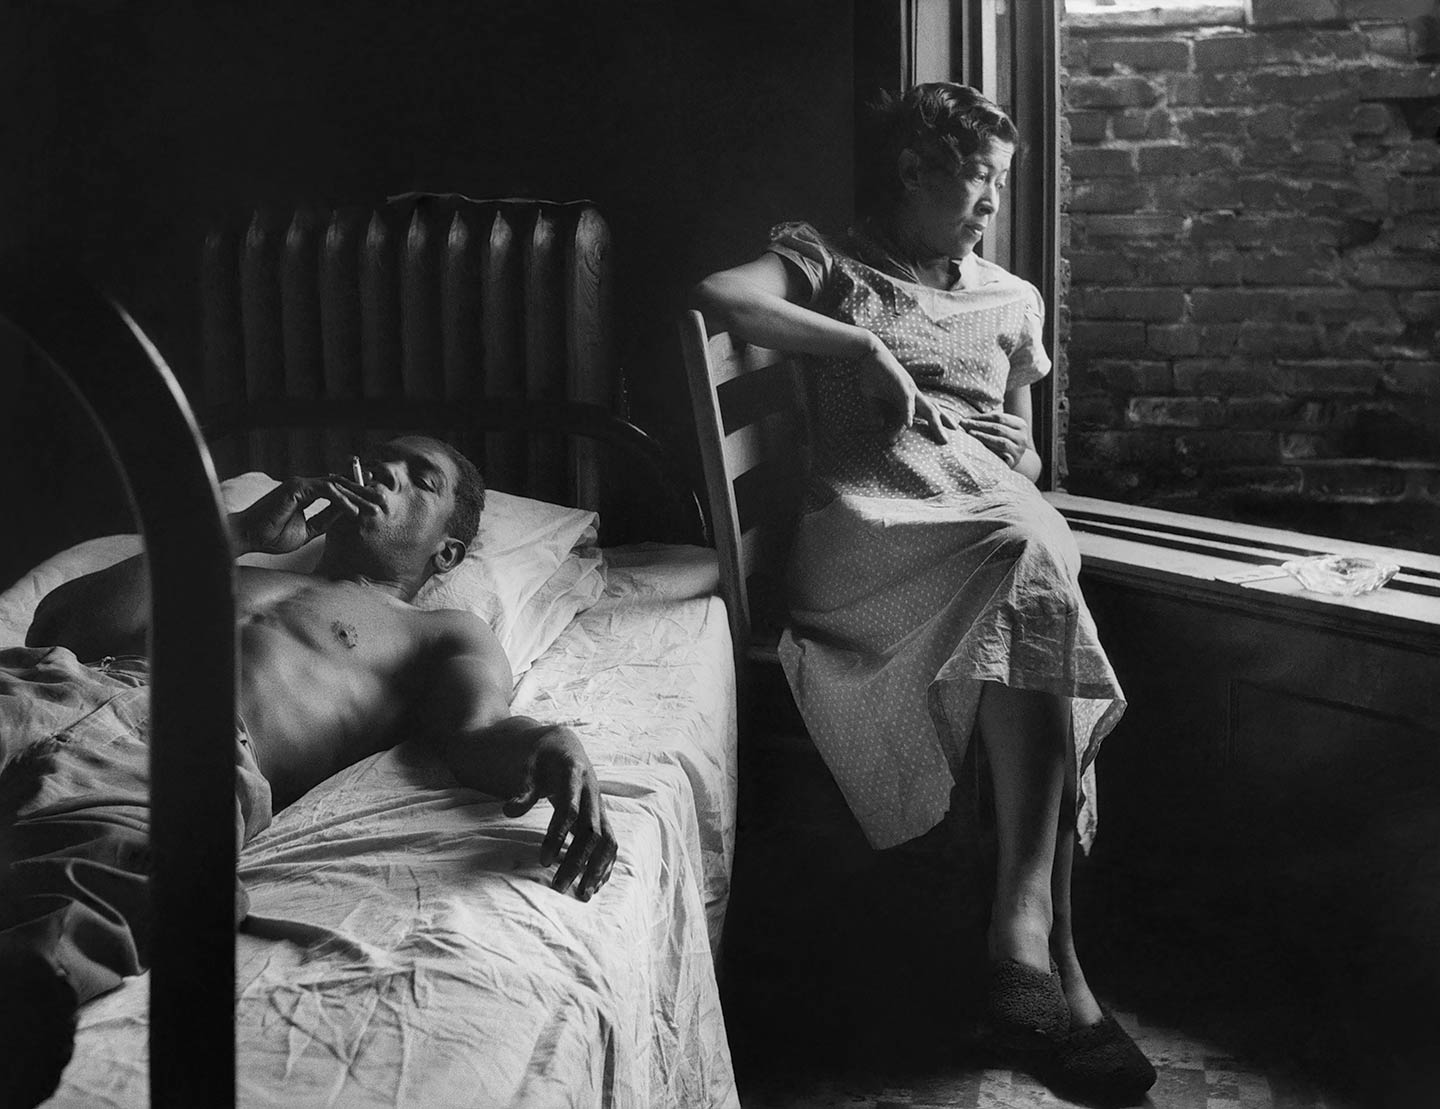 Tenement Dwellers, Chicago, Illinois, 1950, man and woman in tenement